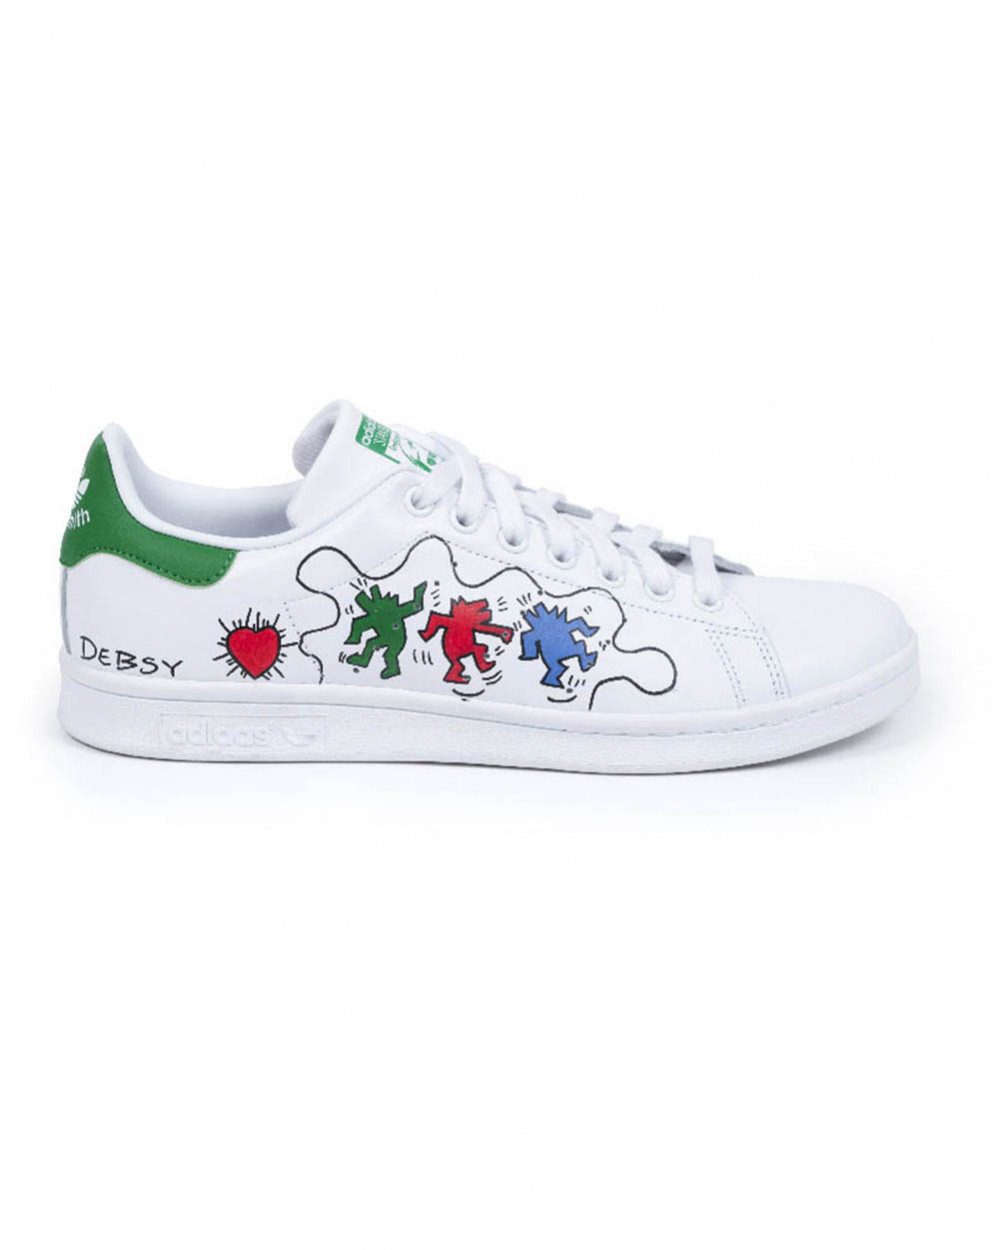 nouveau concept b4890 9caf1 Tennis shoes Adidas by Debsy - Stan Smith